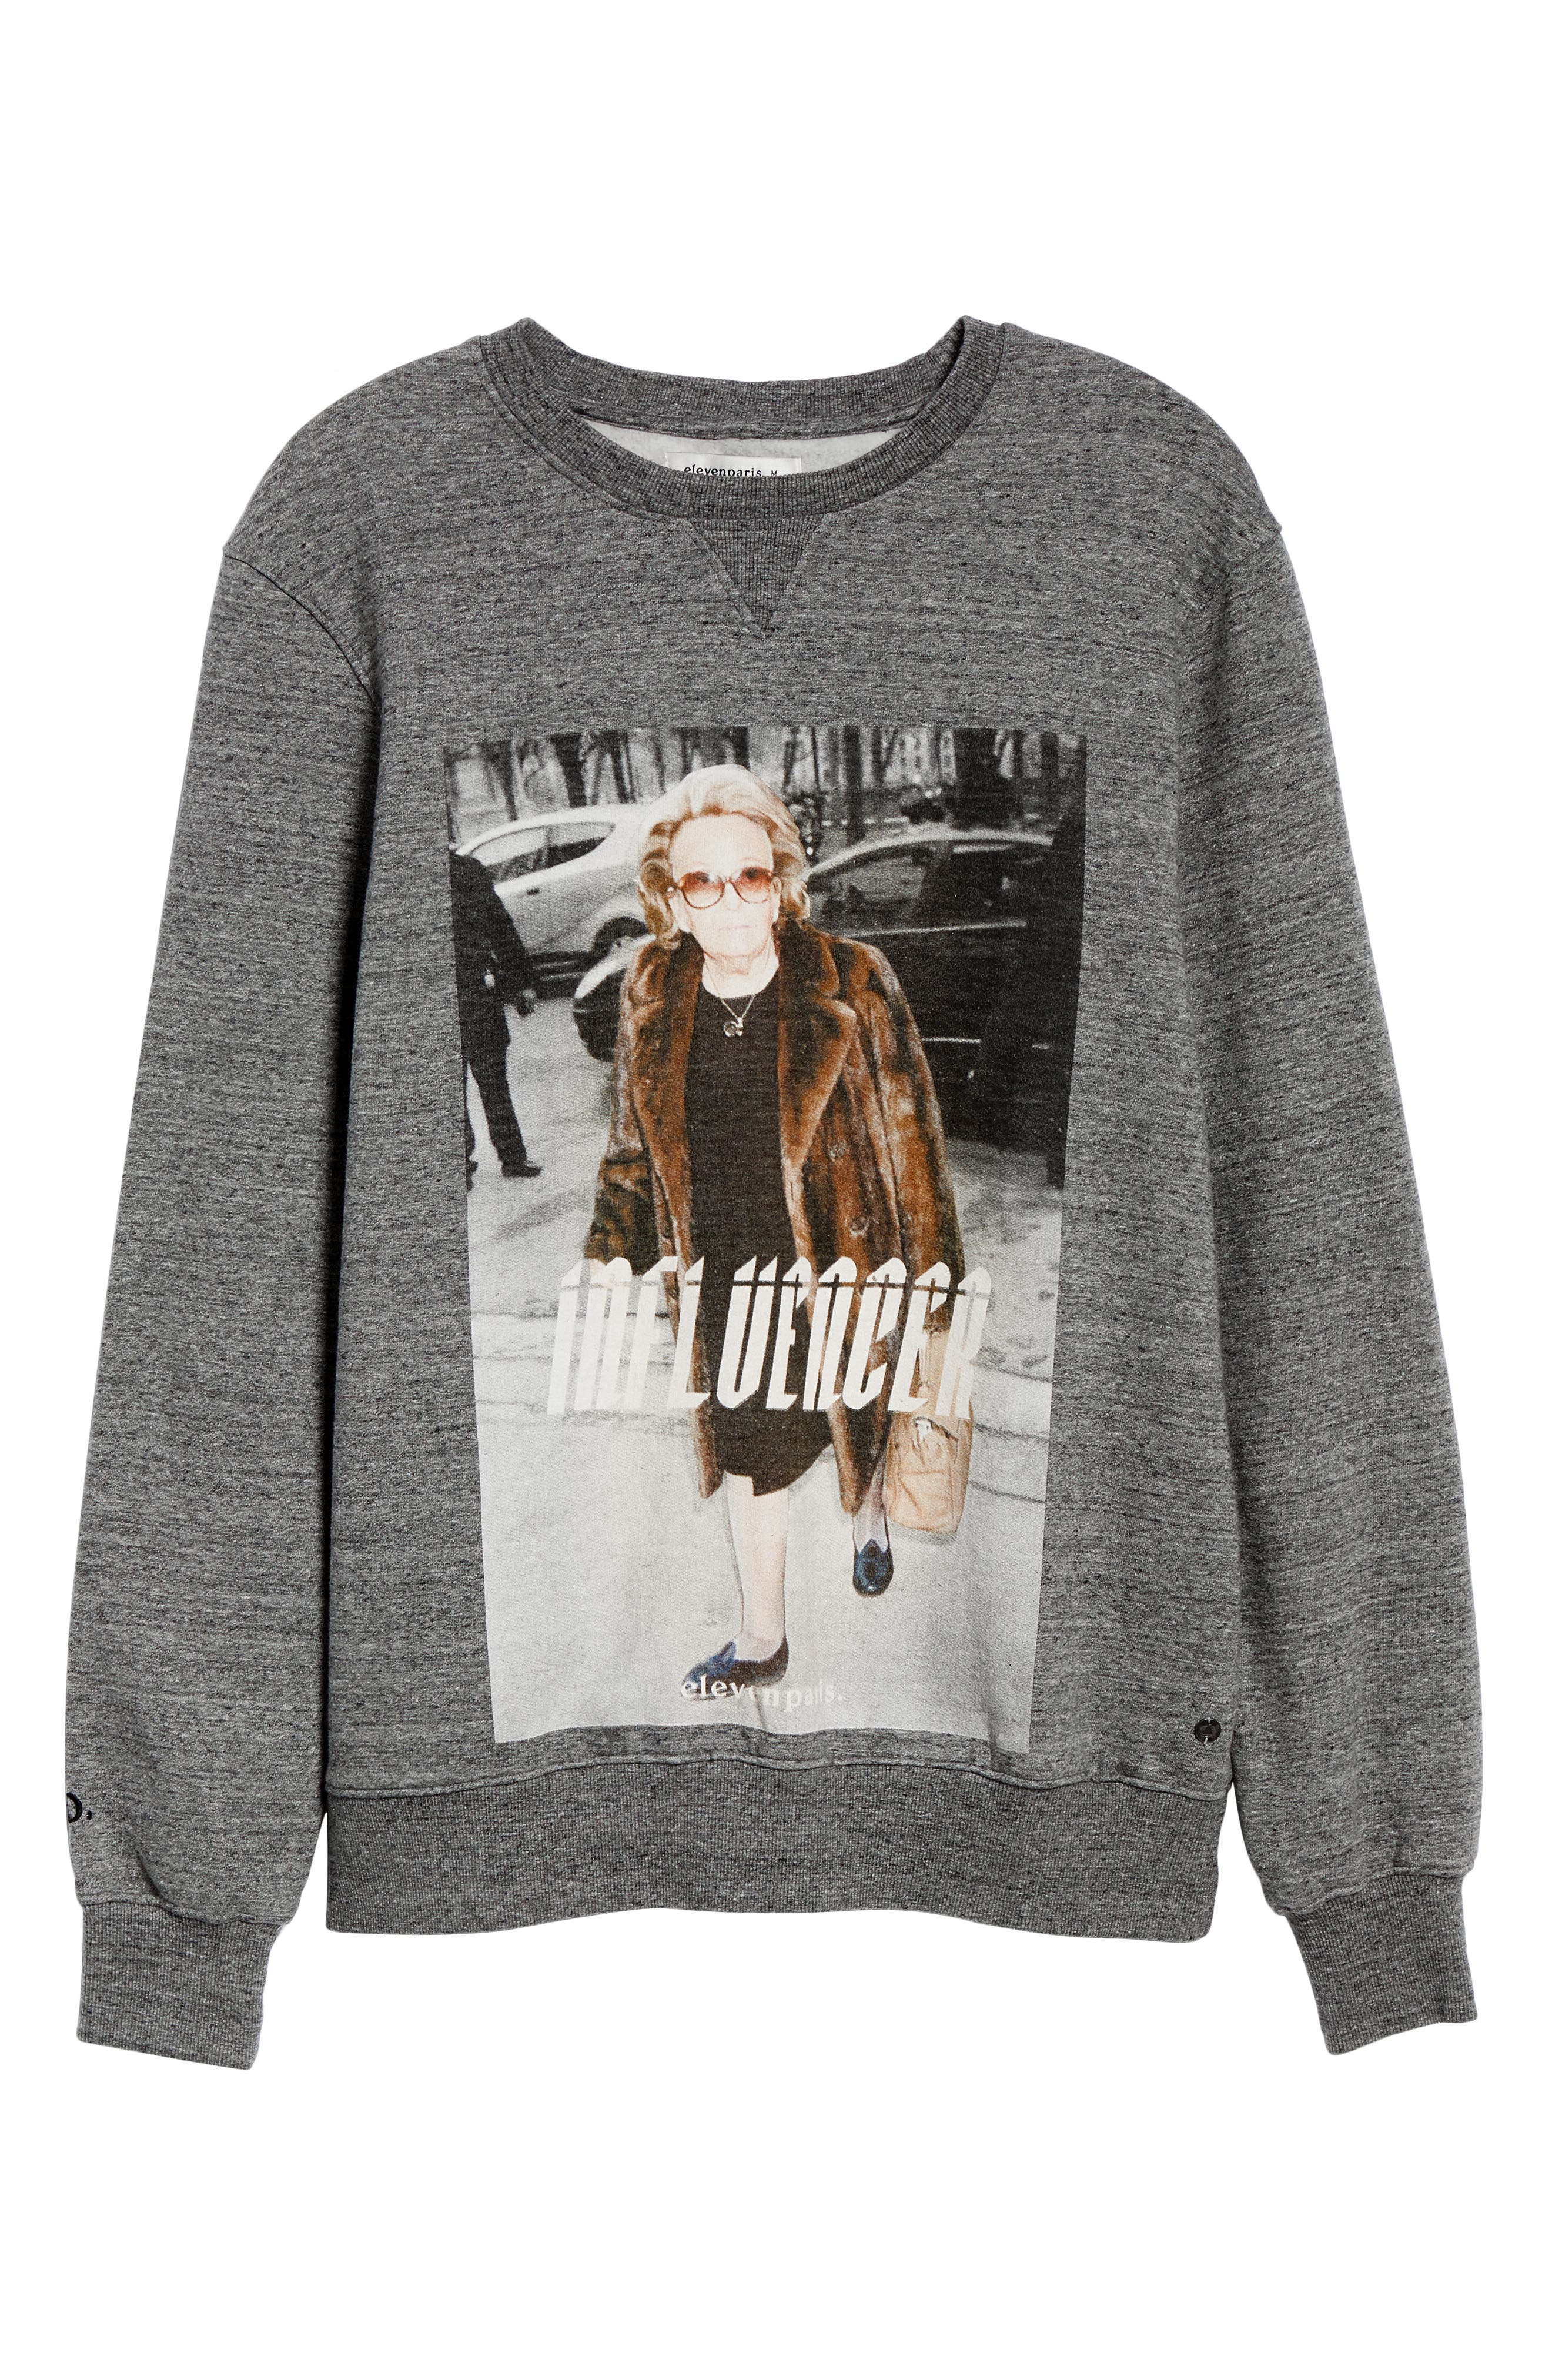 Influencer Graphic Sweatshirt,                             Alternate thumbnail 6, color,                             GREY